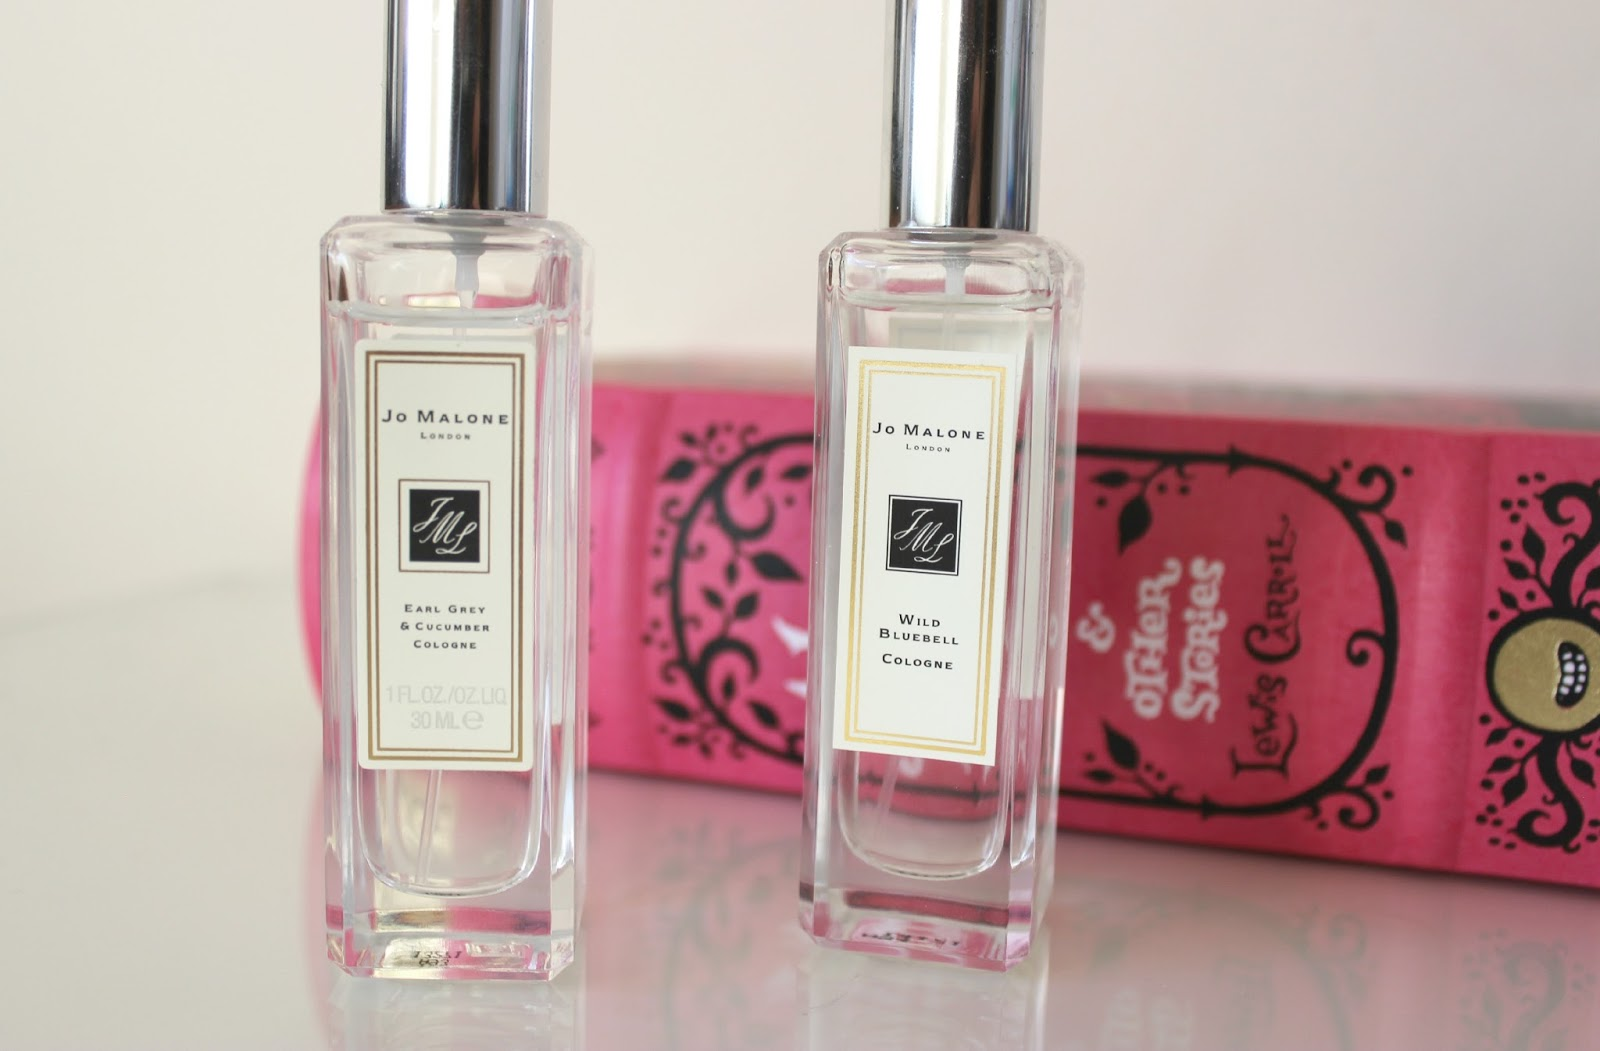 A picture of Jo Malone Earl Grey & Cucumber Cologne and Wild Bluebell Cologne